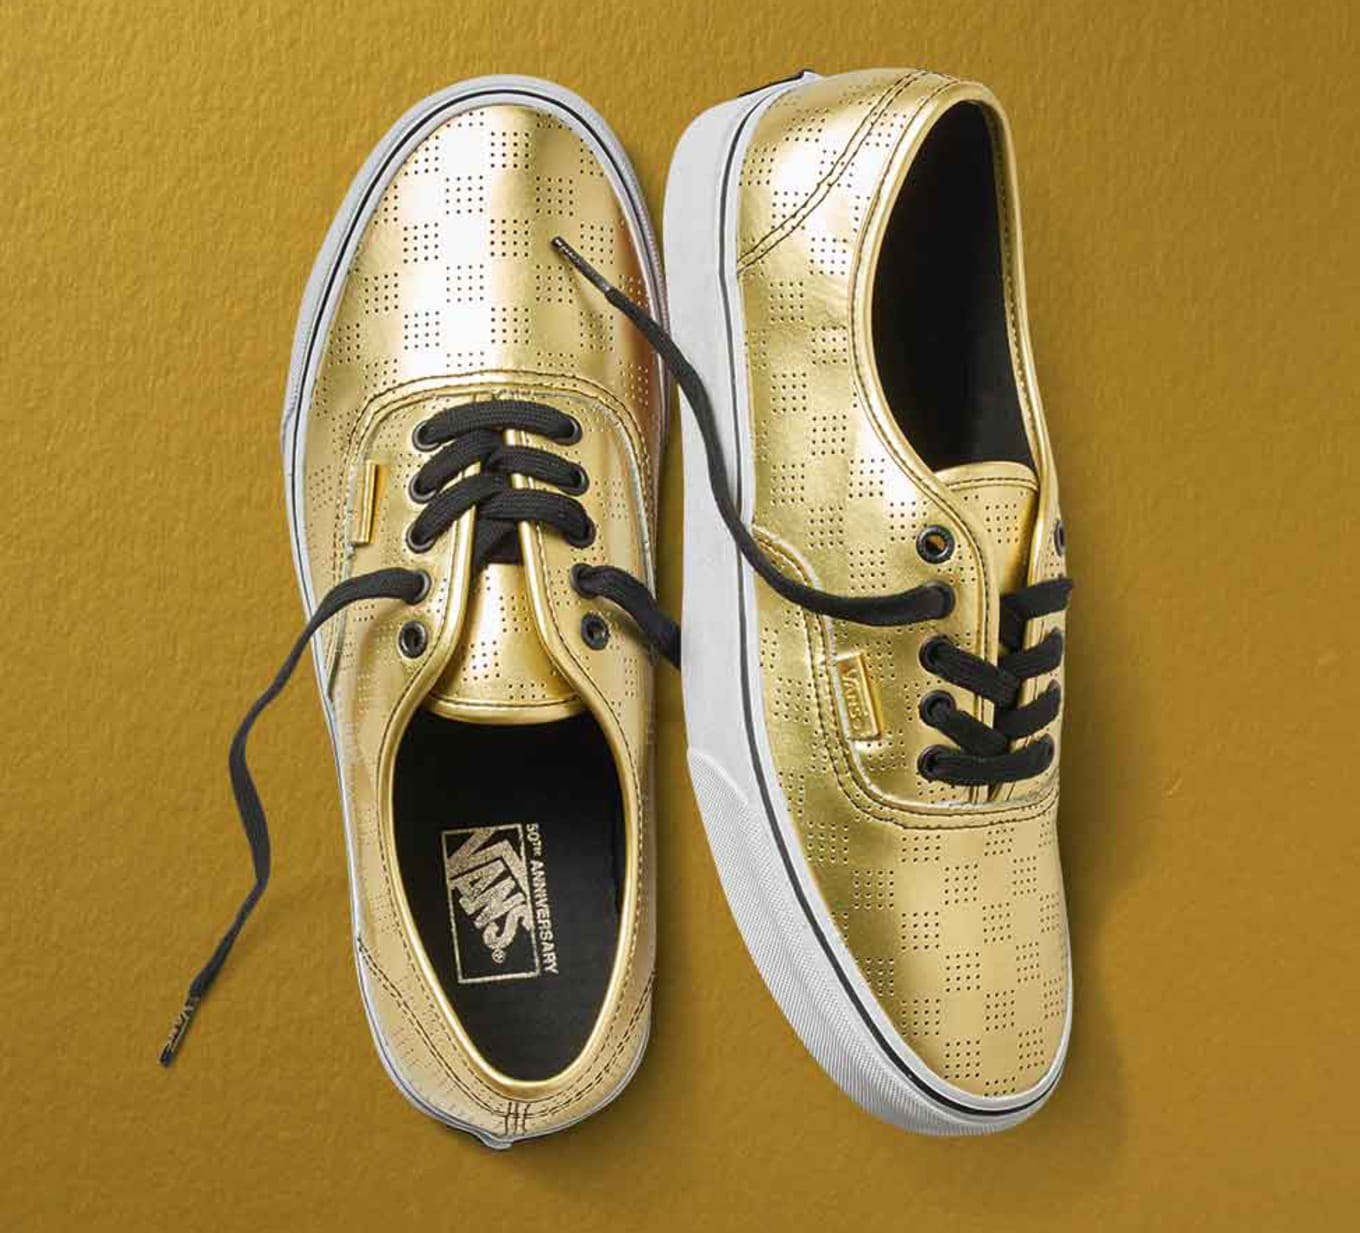 fd54a1744ef8 Vans Celebrates Its Big Birthday With Golden Sneakers. More for the 50th  anniversary.